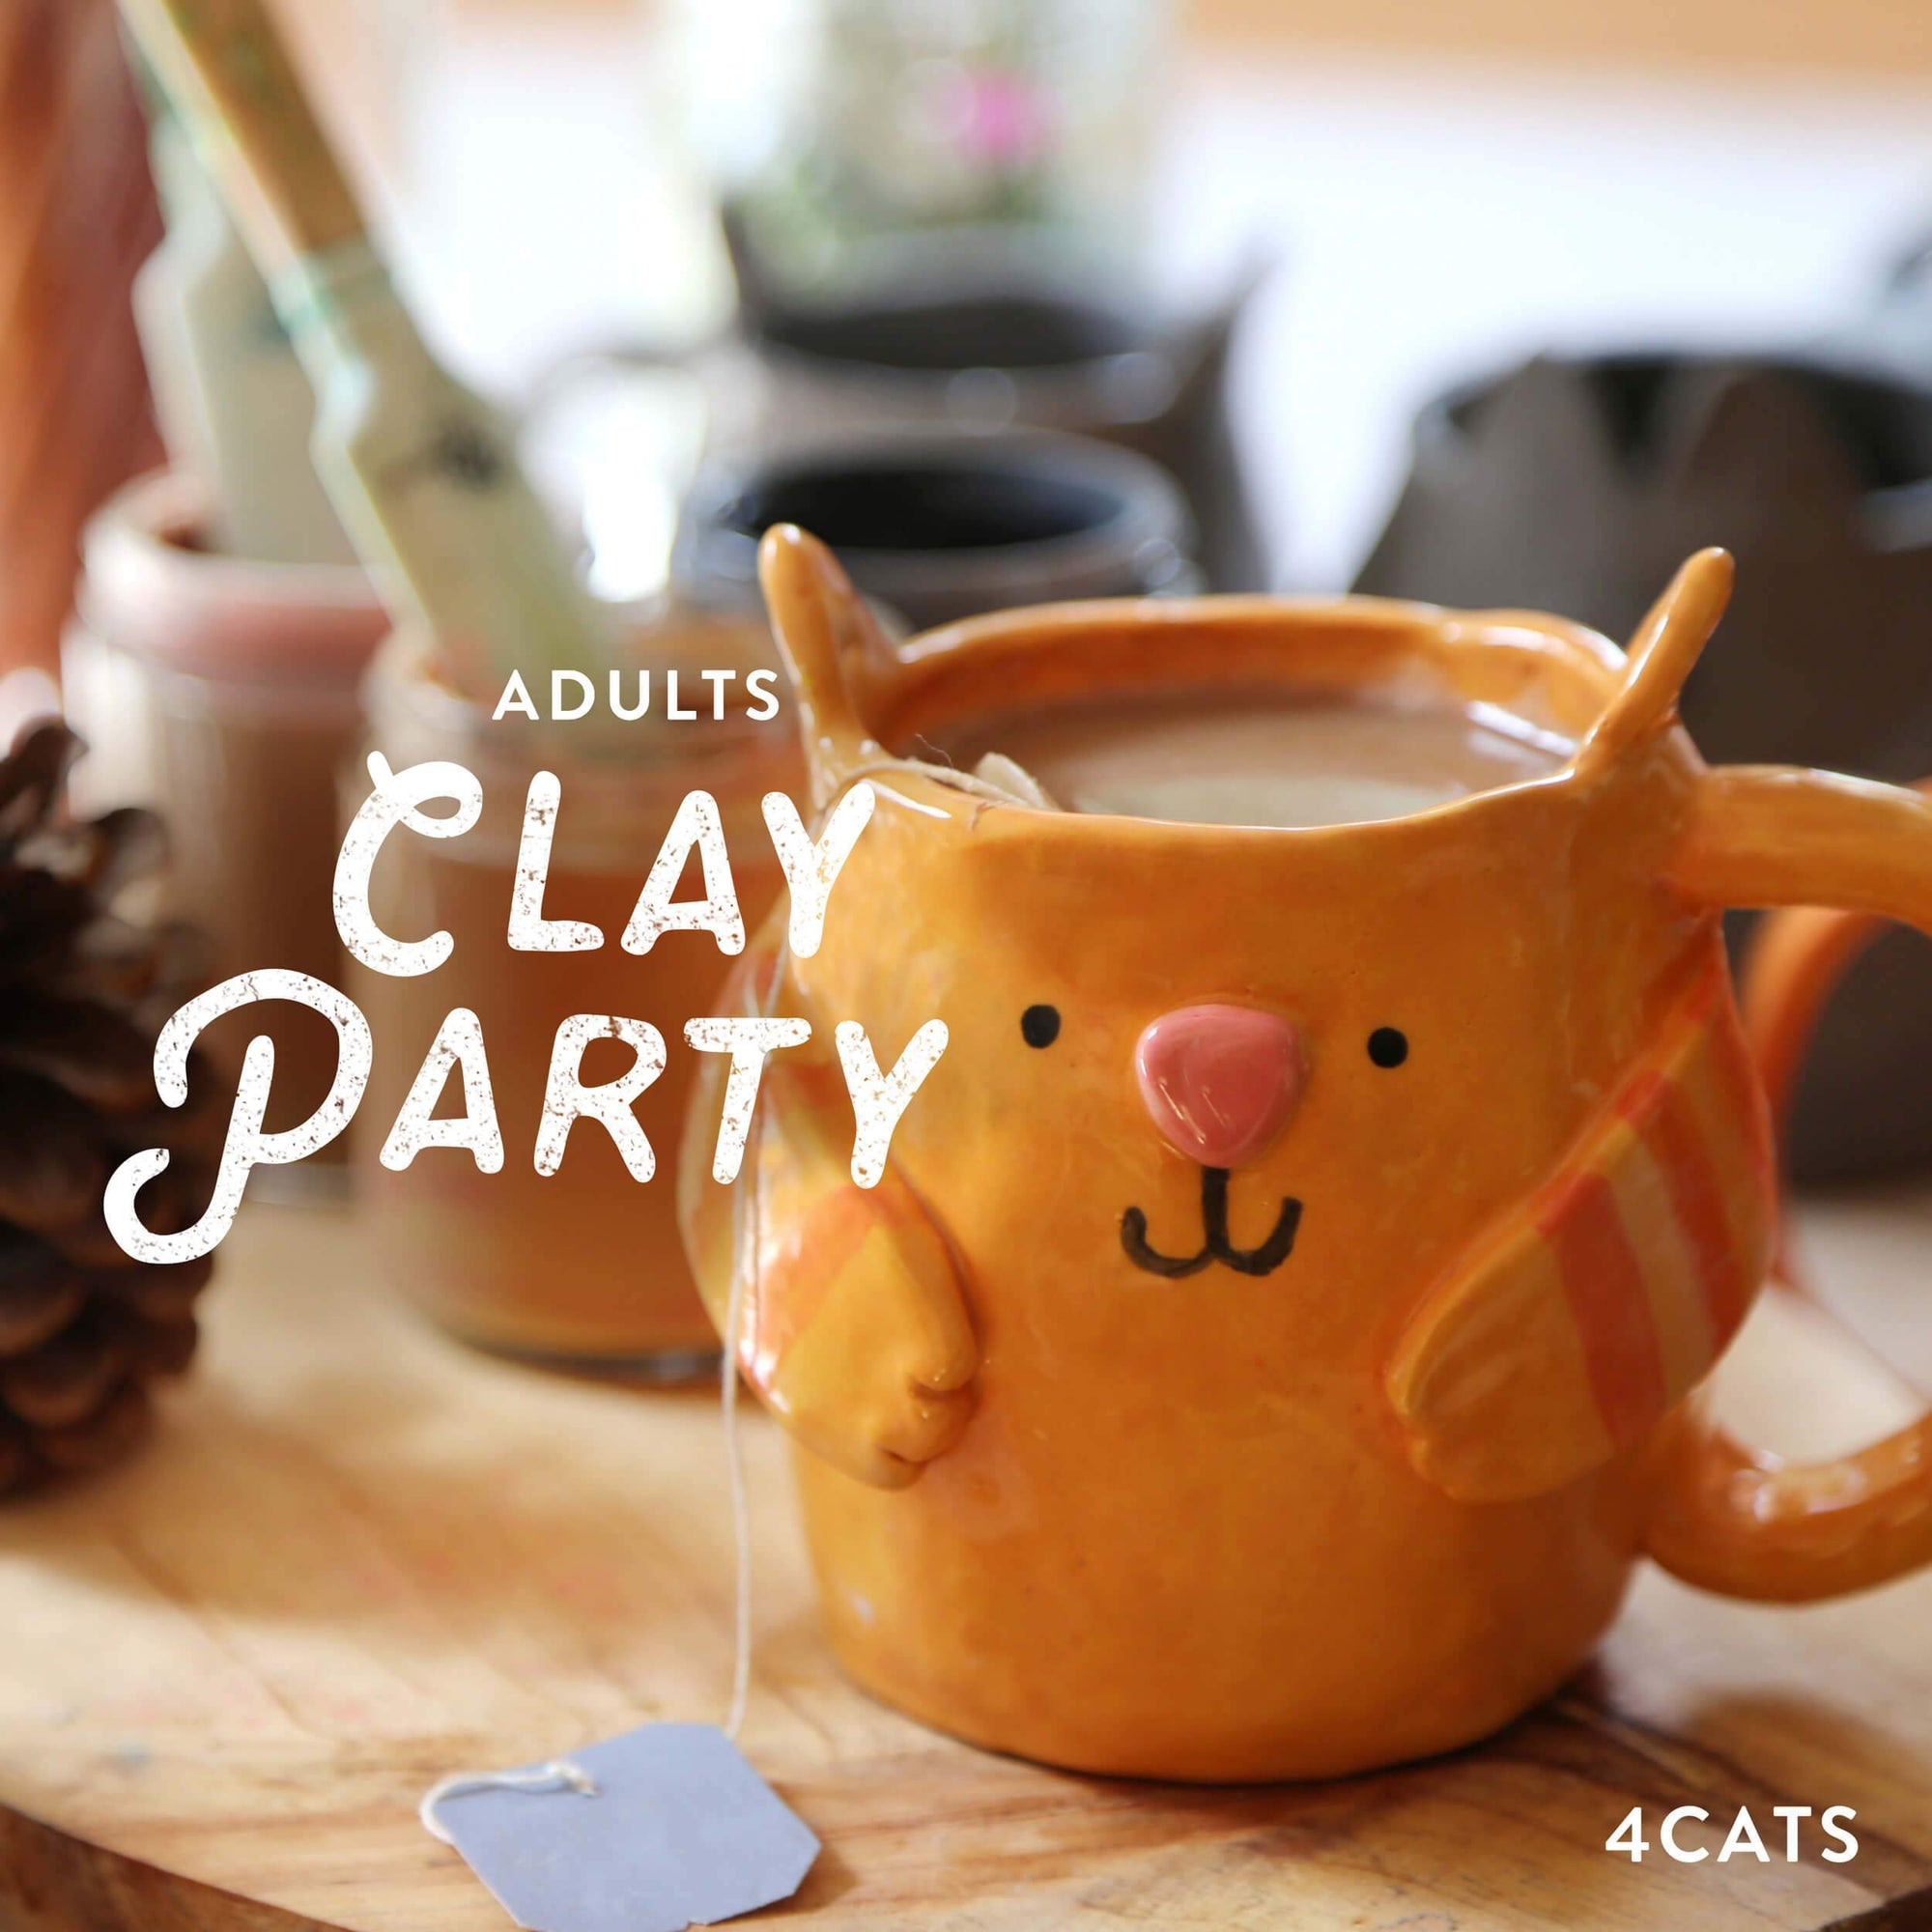 Adult Clay Party